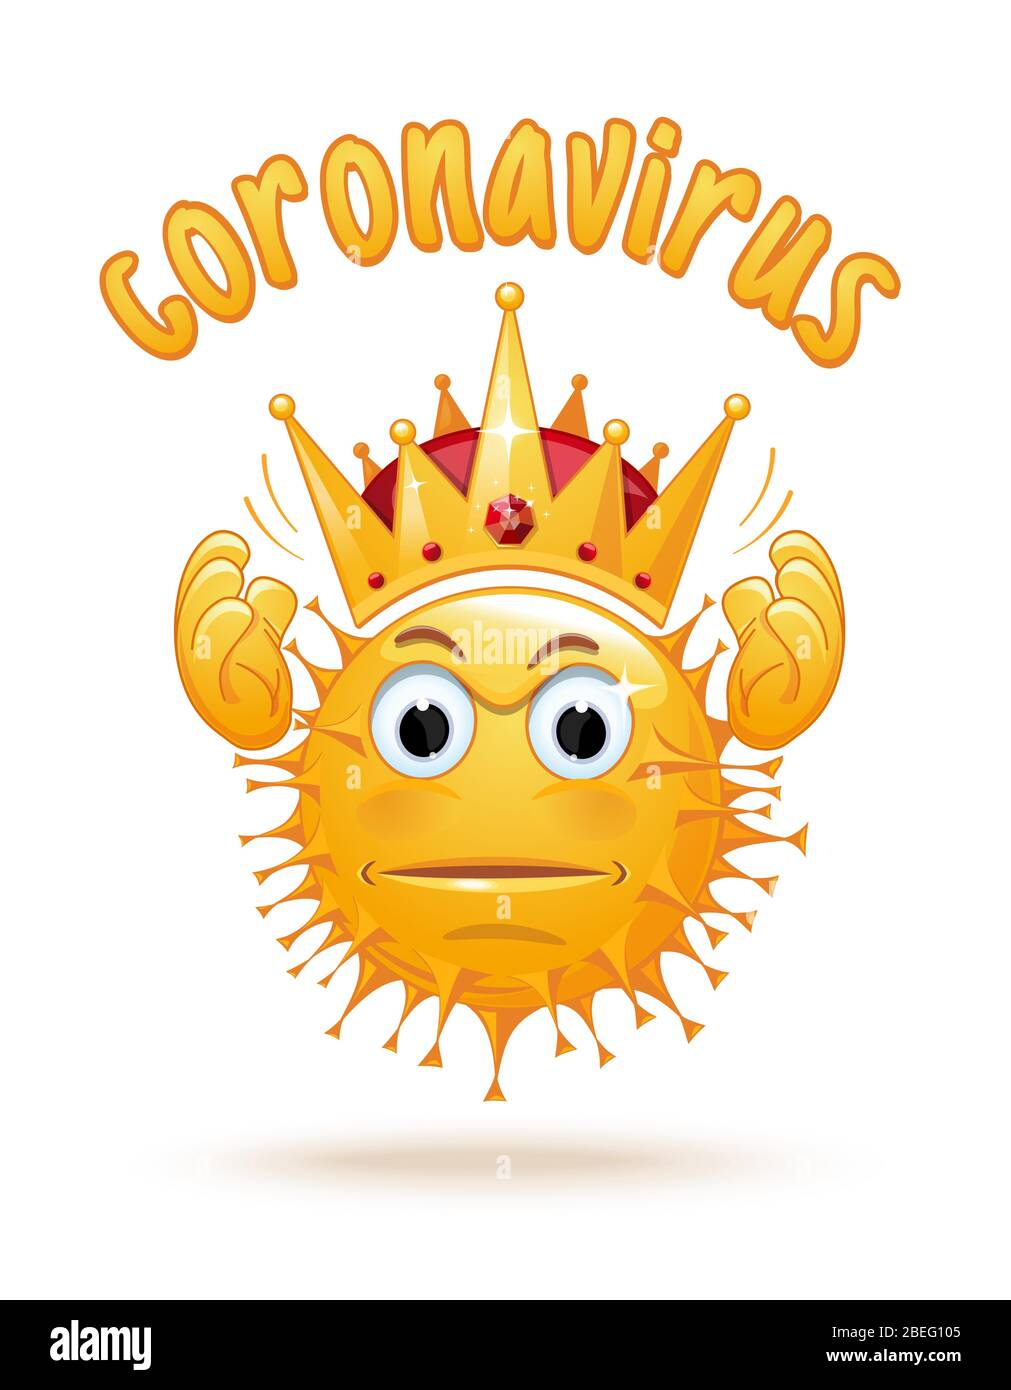 Angry Coronavirus Holds A Crown Over His Head Stock Vector Image Art Alamy The anatomy of the crown varies between different organisms. alamy